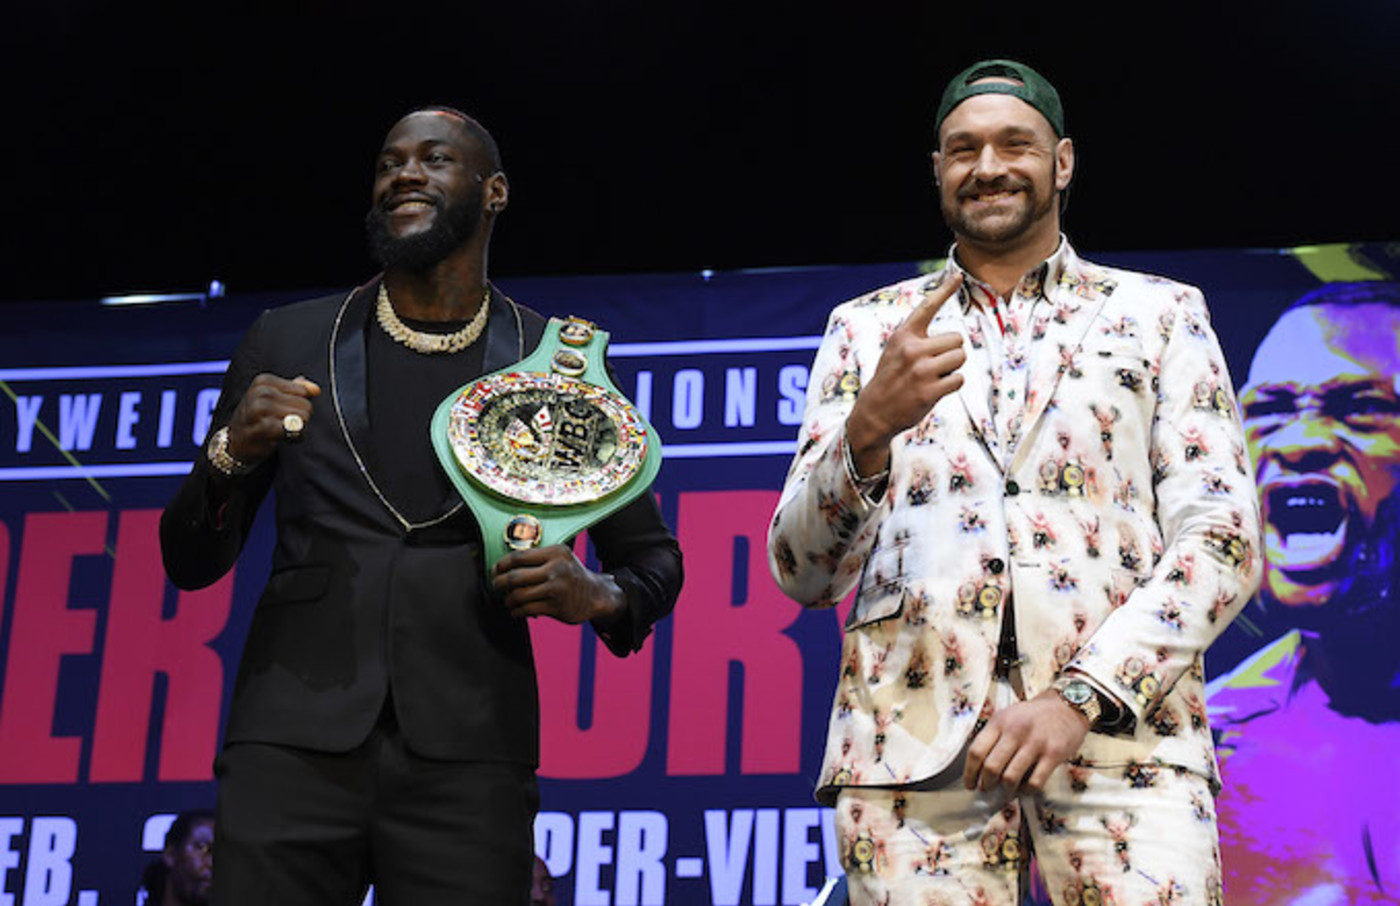 Deontay Wilder and Tyson Fury get together during a news conference at The Novo Theater.